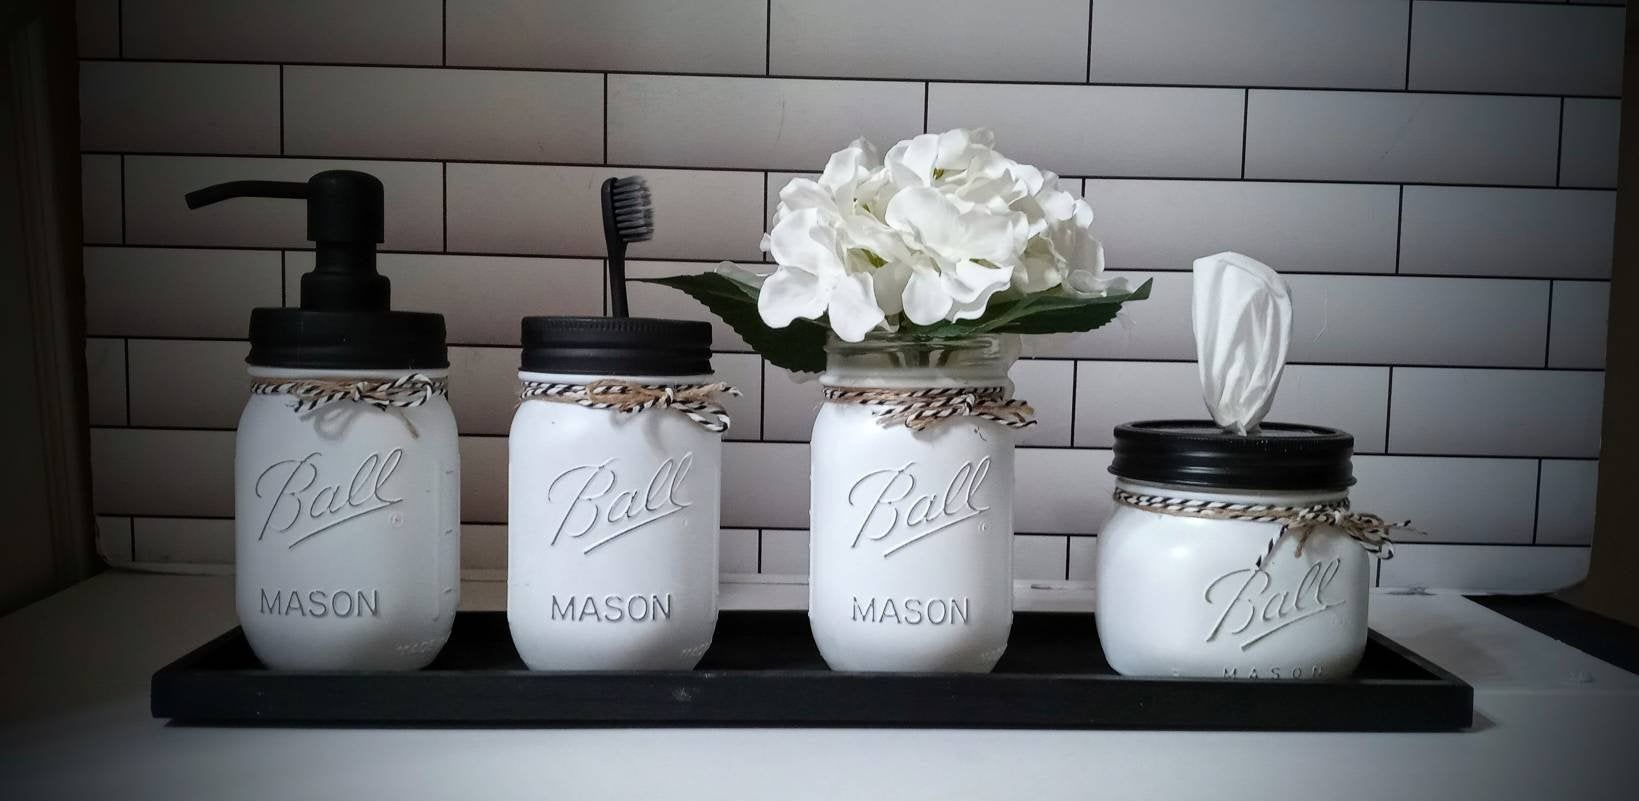 Photo of Black and White Mason Jar Bathroom Decor with/wout Tray, Soap Dispenser, Toothbrush Caddy, Vase and Flower + Tissue Jar